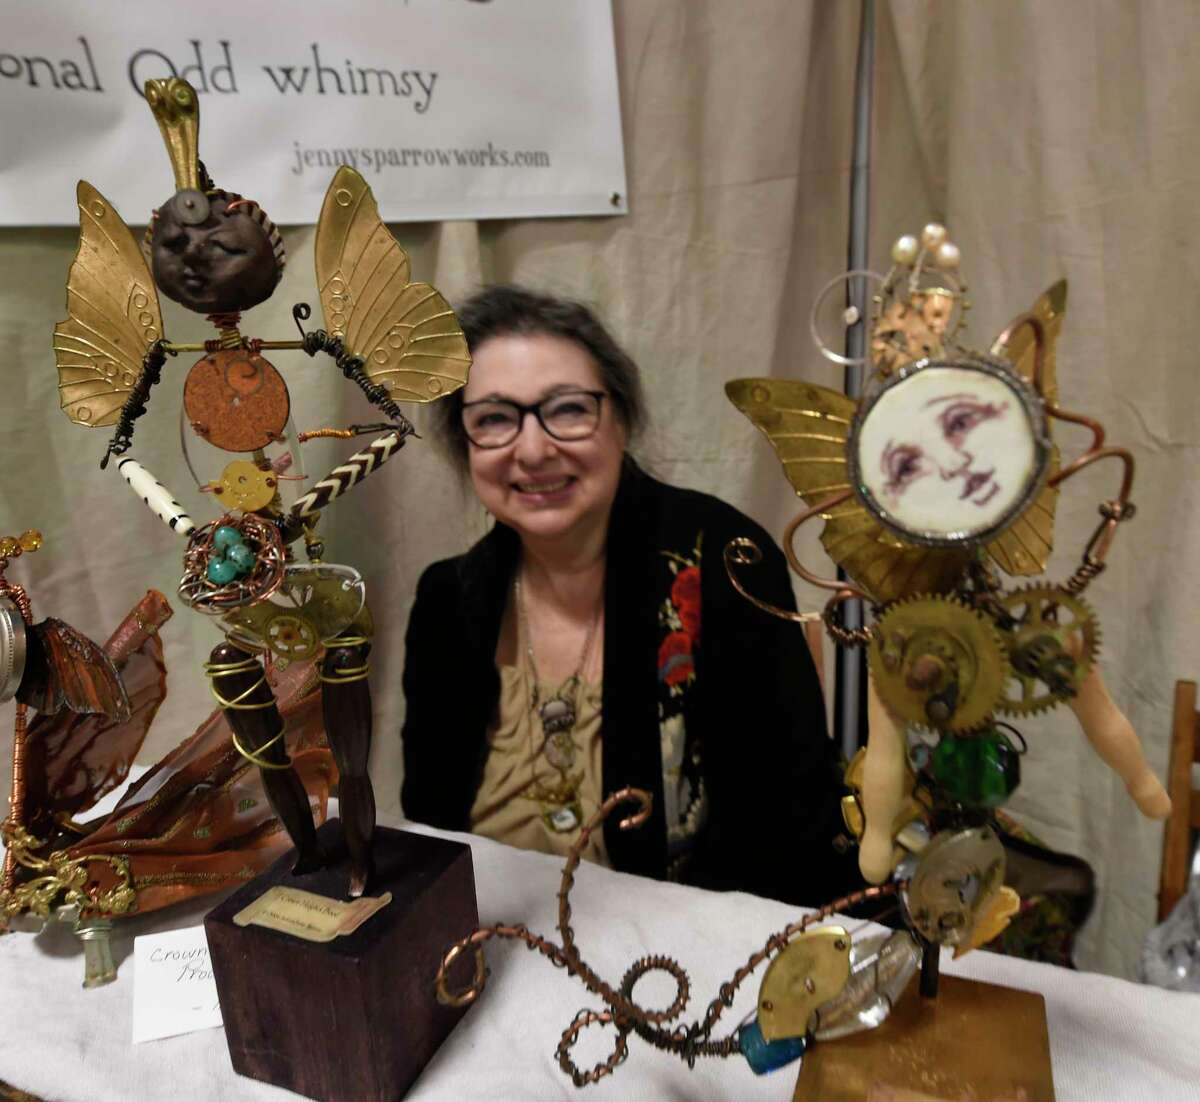 Whimsy is a perfect description of Deborah Jackson's Sculptures from the Jenny Sparrow Works of Troy as the Collar City Craft Fest opens at the Arts Center of the Capital Region Friday April 28, 2017 in Troy, N.Y. (Skip Dickstein/Times Union)